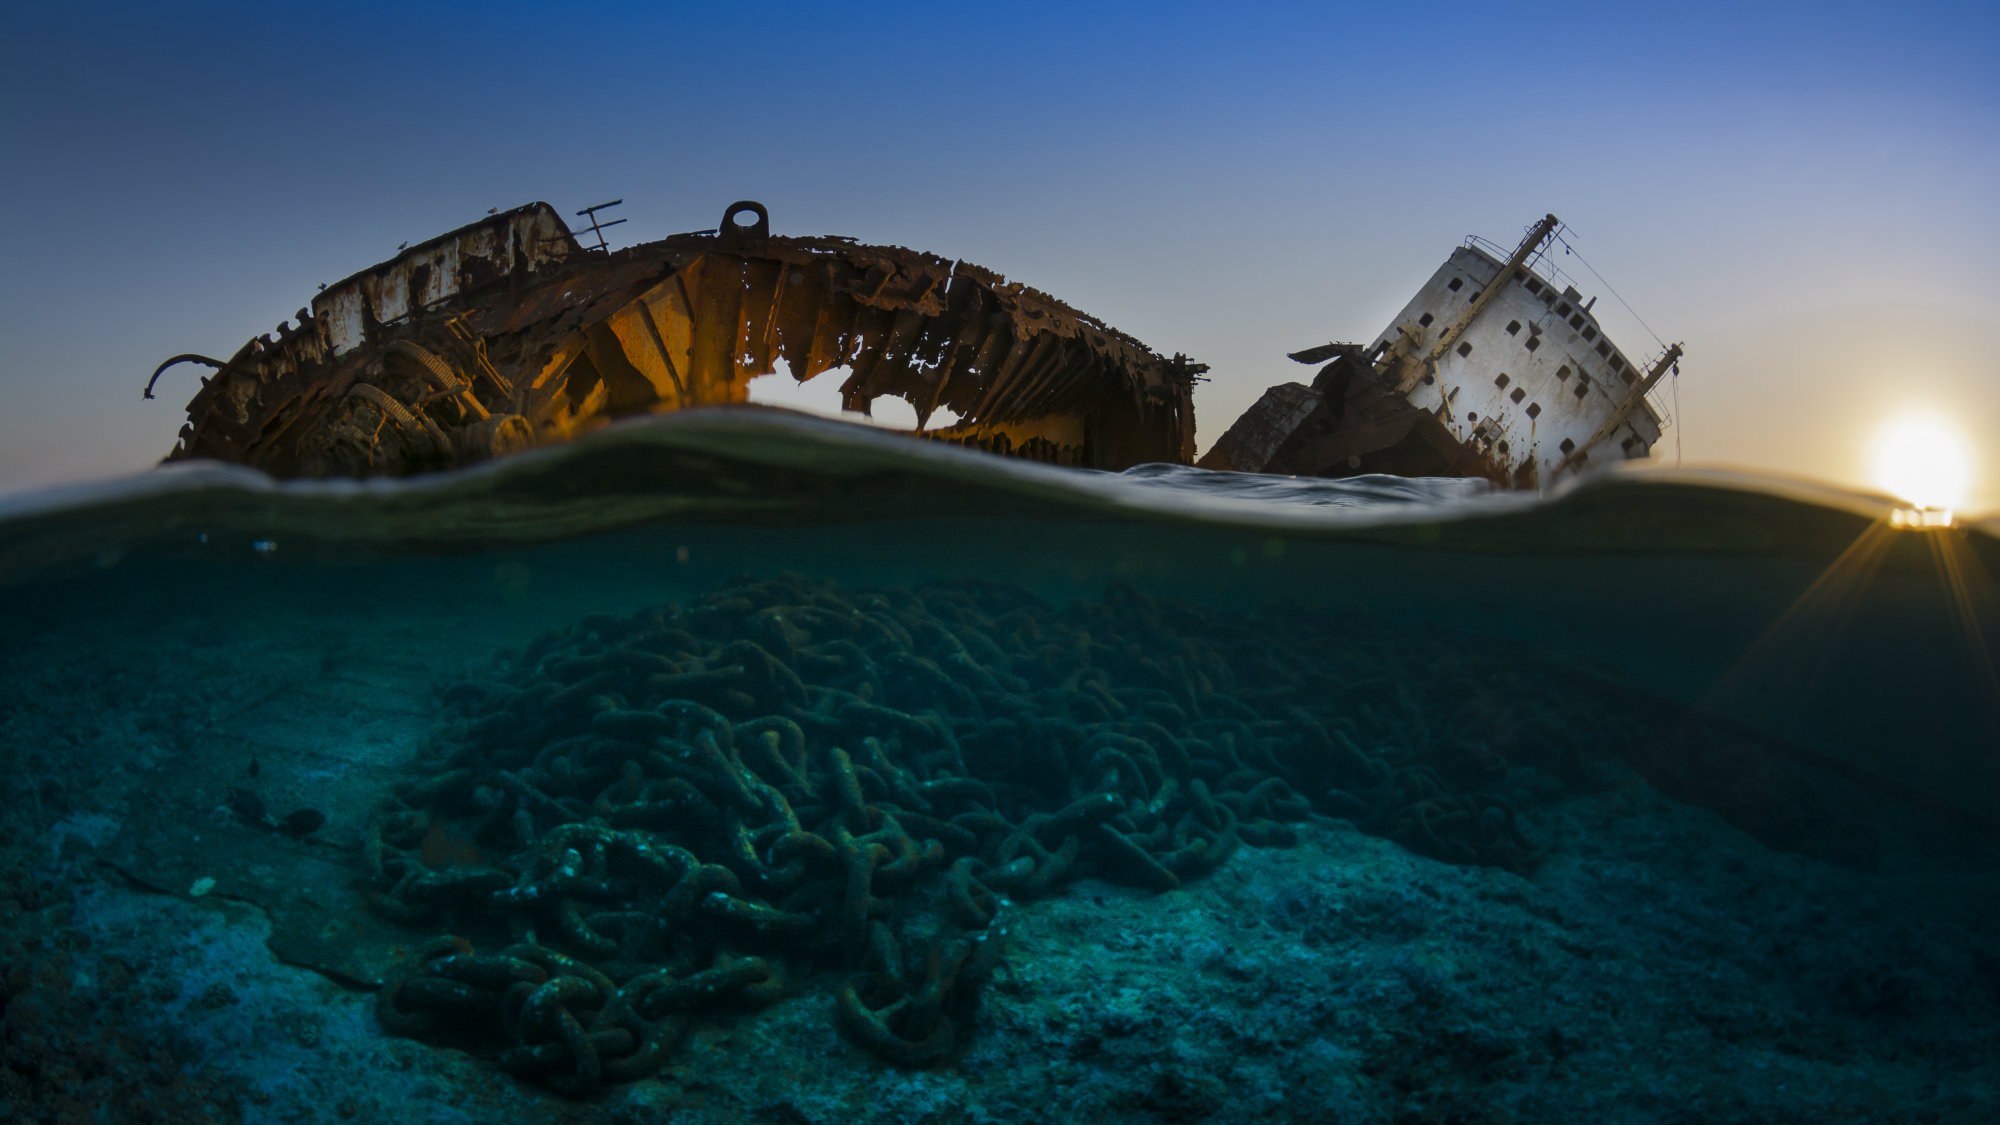 This is the wreck of the Louilla resting on top of Gordon reef in the Straits of Tiran on the edge of the Sinai. Beneath her lies a pile of her anchor chains.